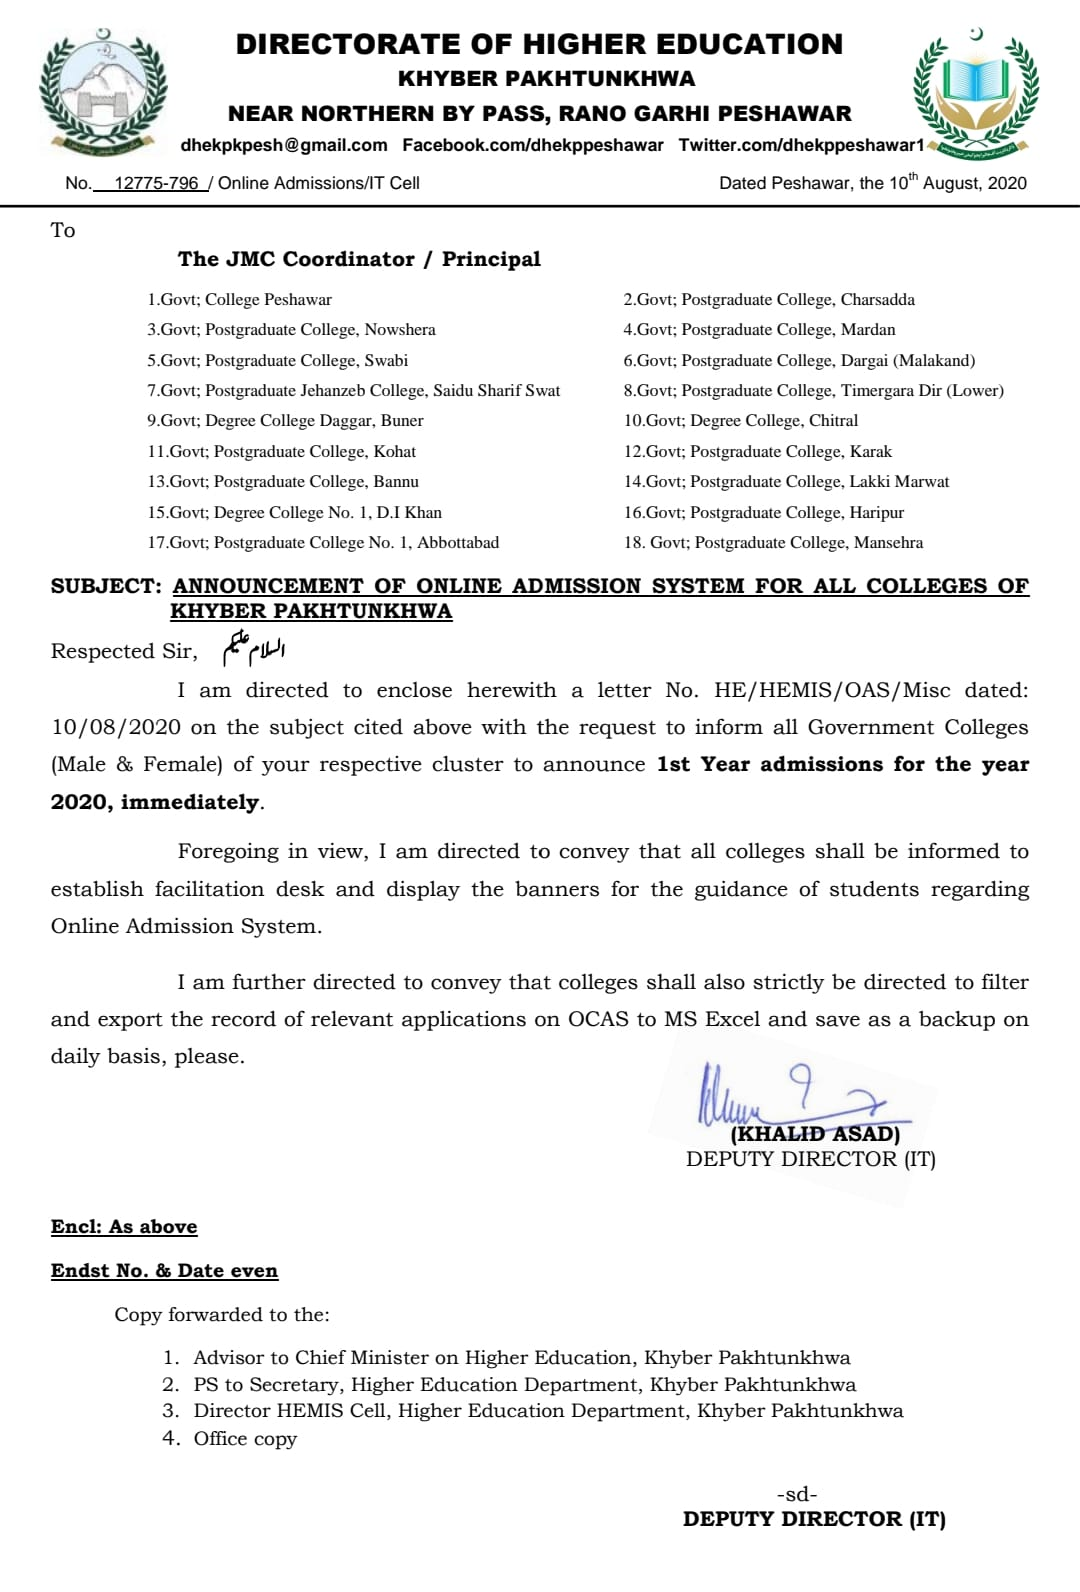 Announcement of Online Admission System for All Colleges in KP